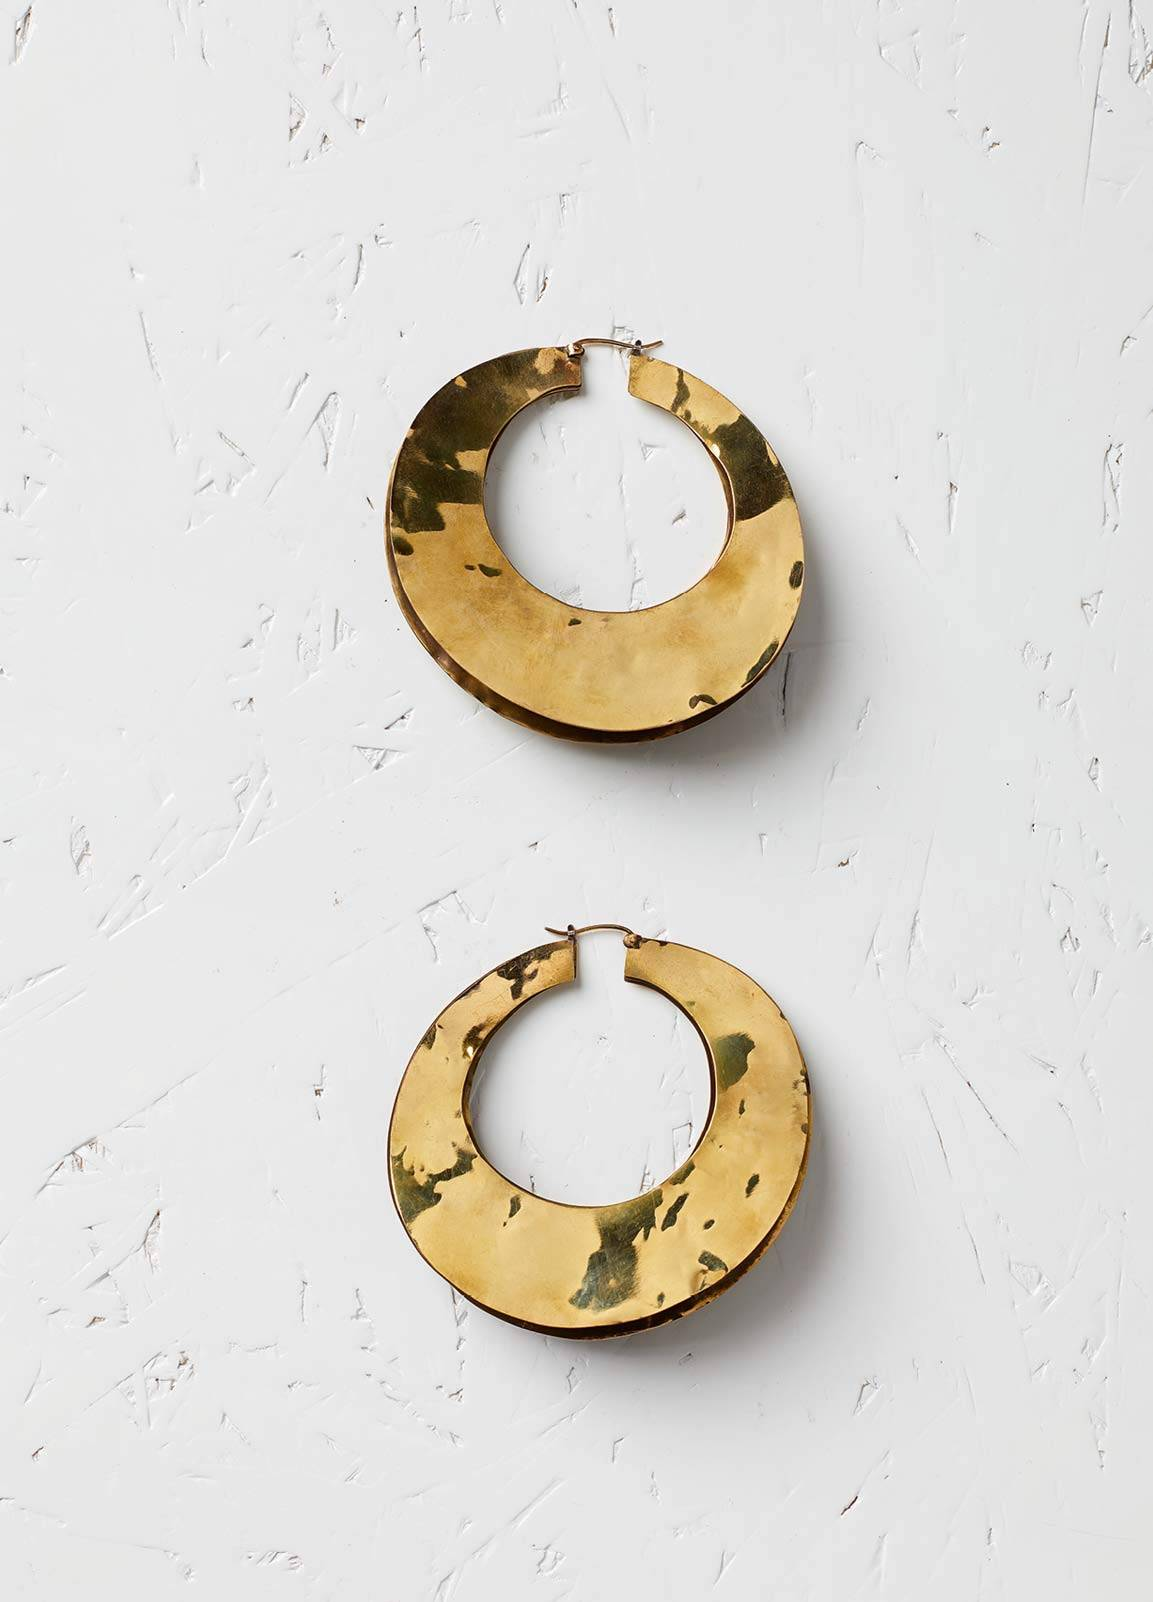 Celine AW15 earrings